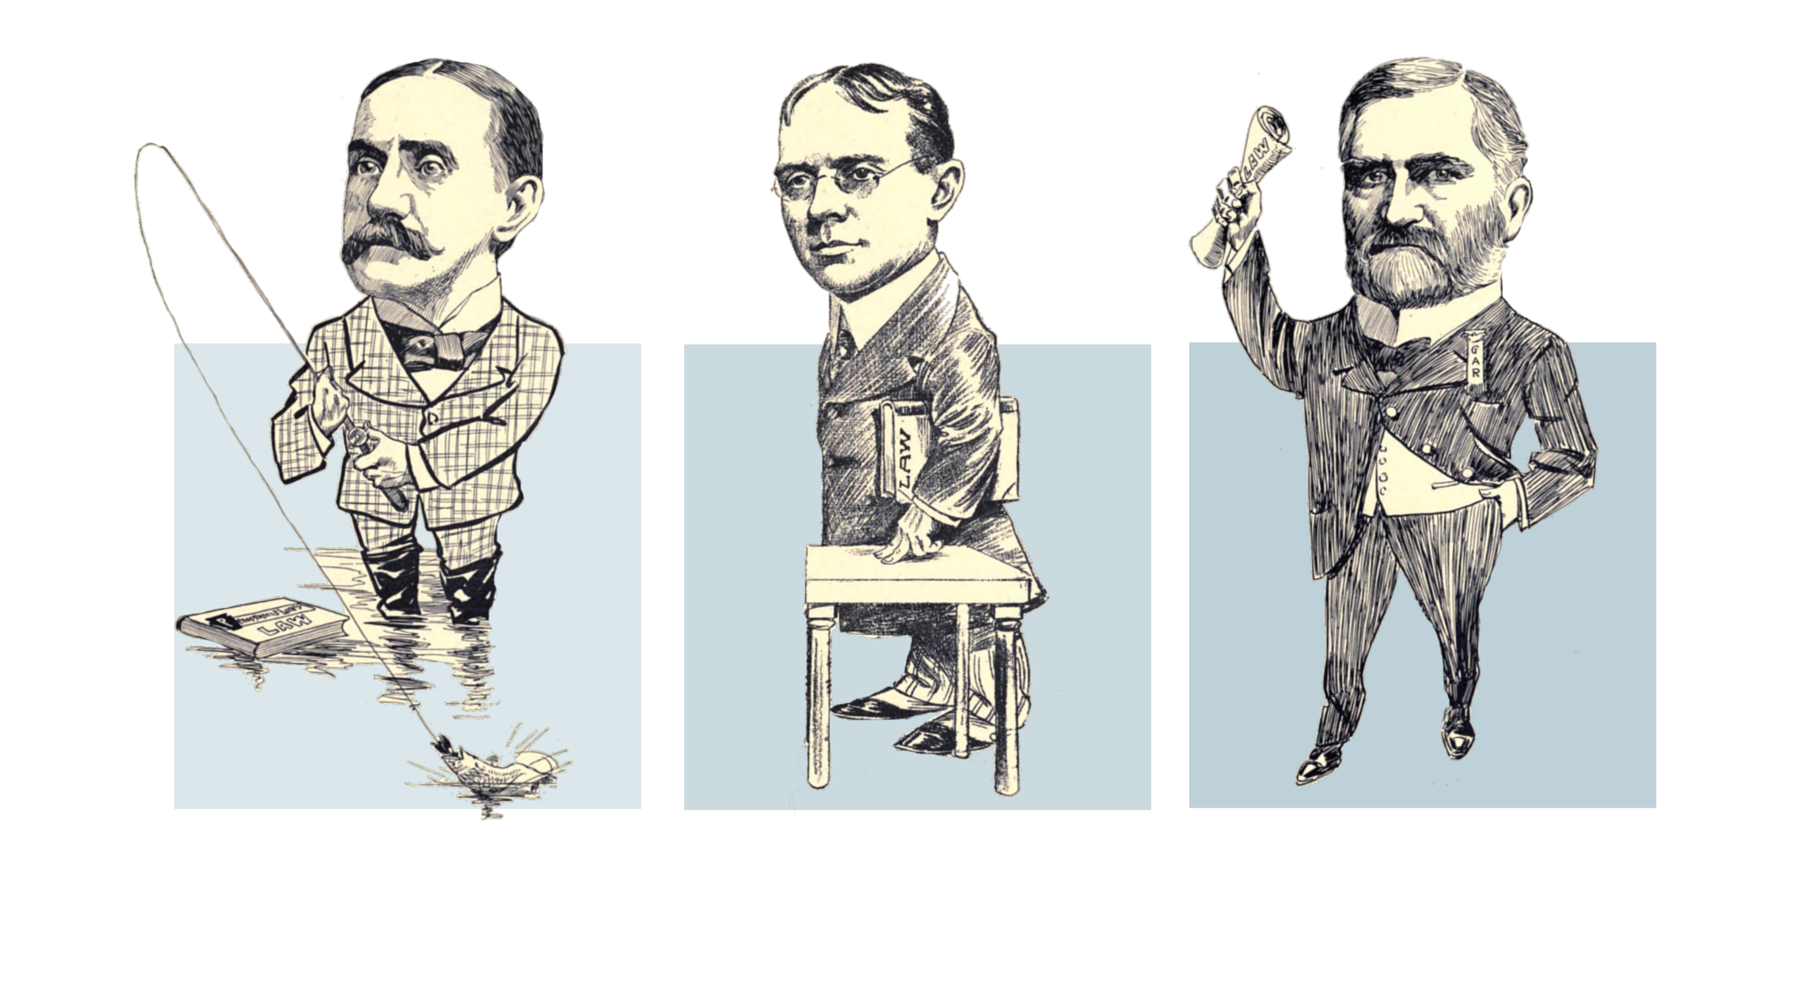 Samuel O. Pickens, Chas. W. Moores, Smiley N. Chambers (L-R) (Partners)